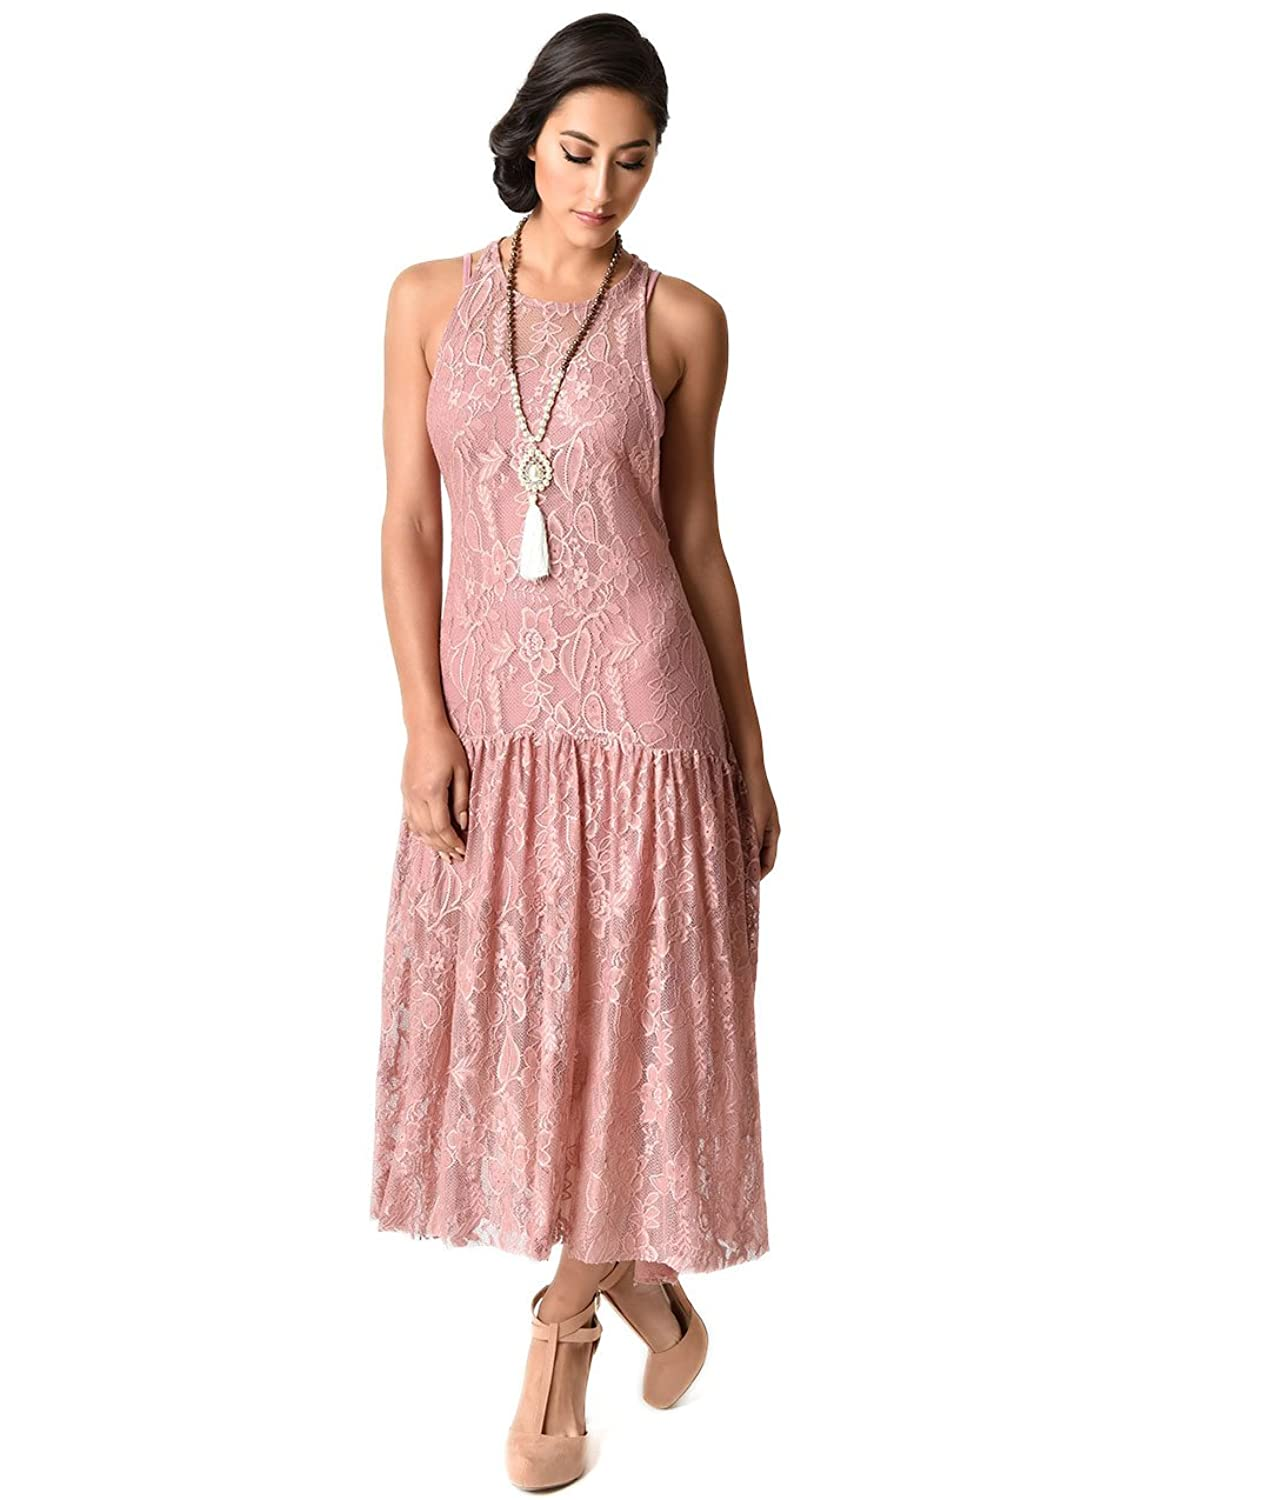 Vintage 1920s Flapper Style Dusty Rose Lace Racerback Midi Dress at ...